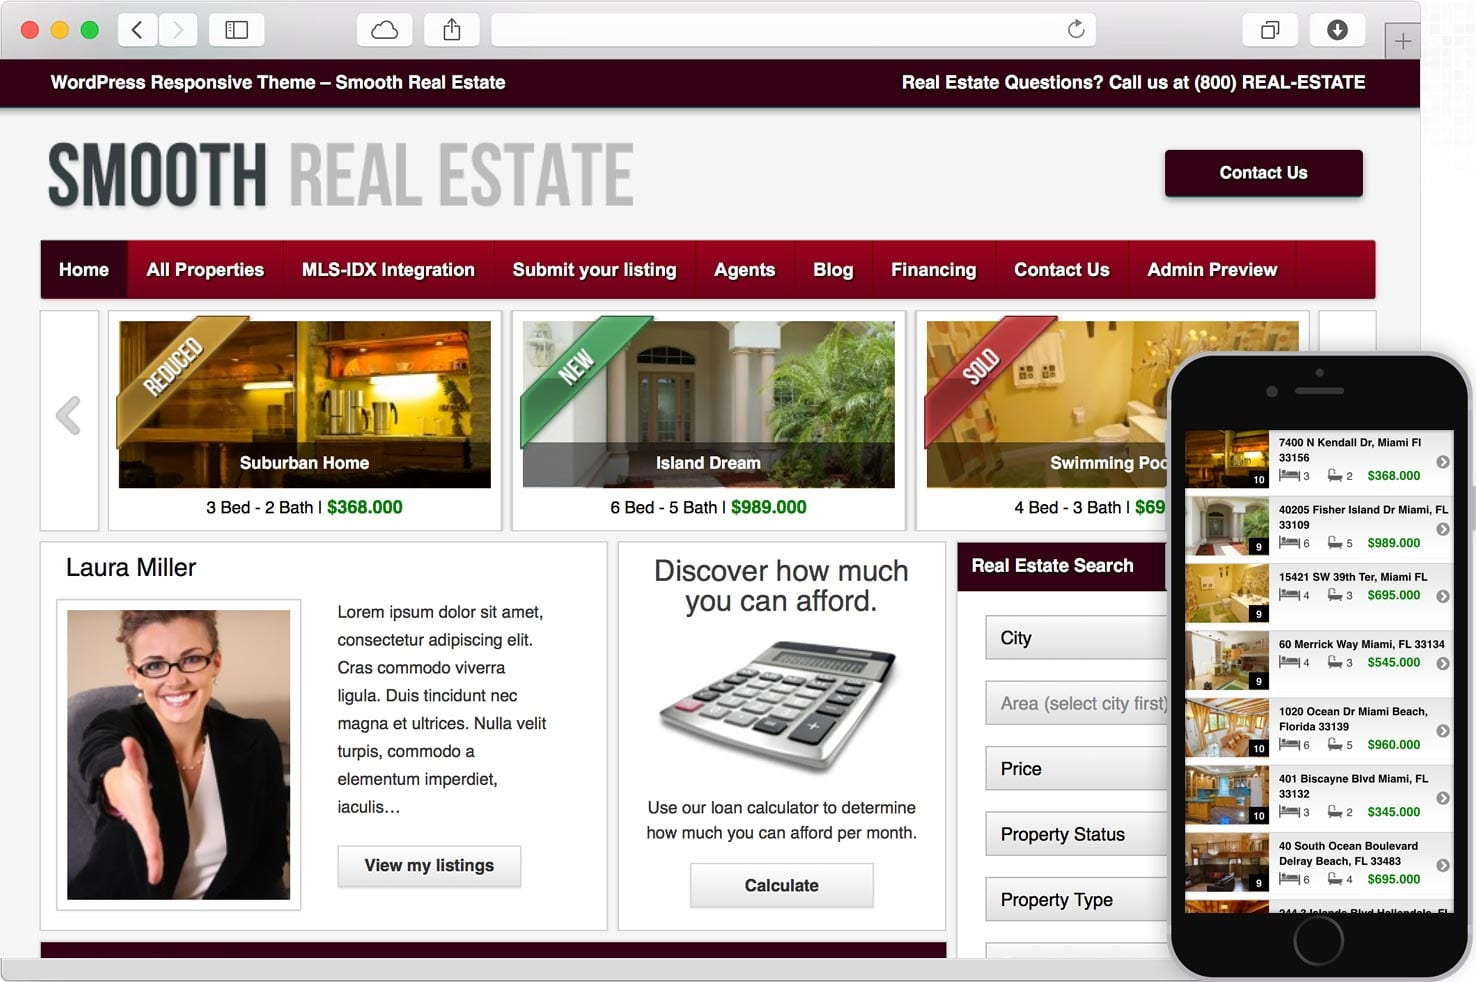 WordPress Real Estate Theme with IDX-MLS integration and Mobile Responsive Layout.